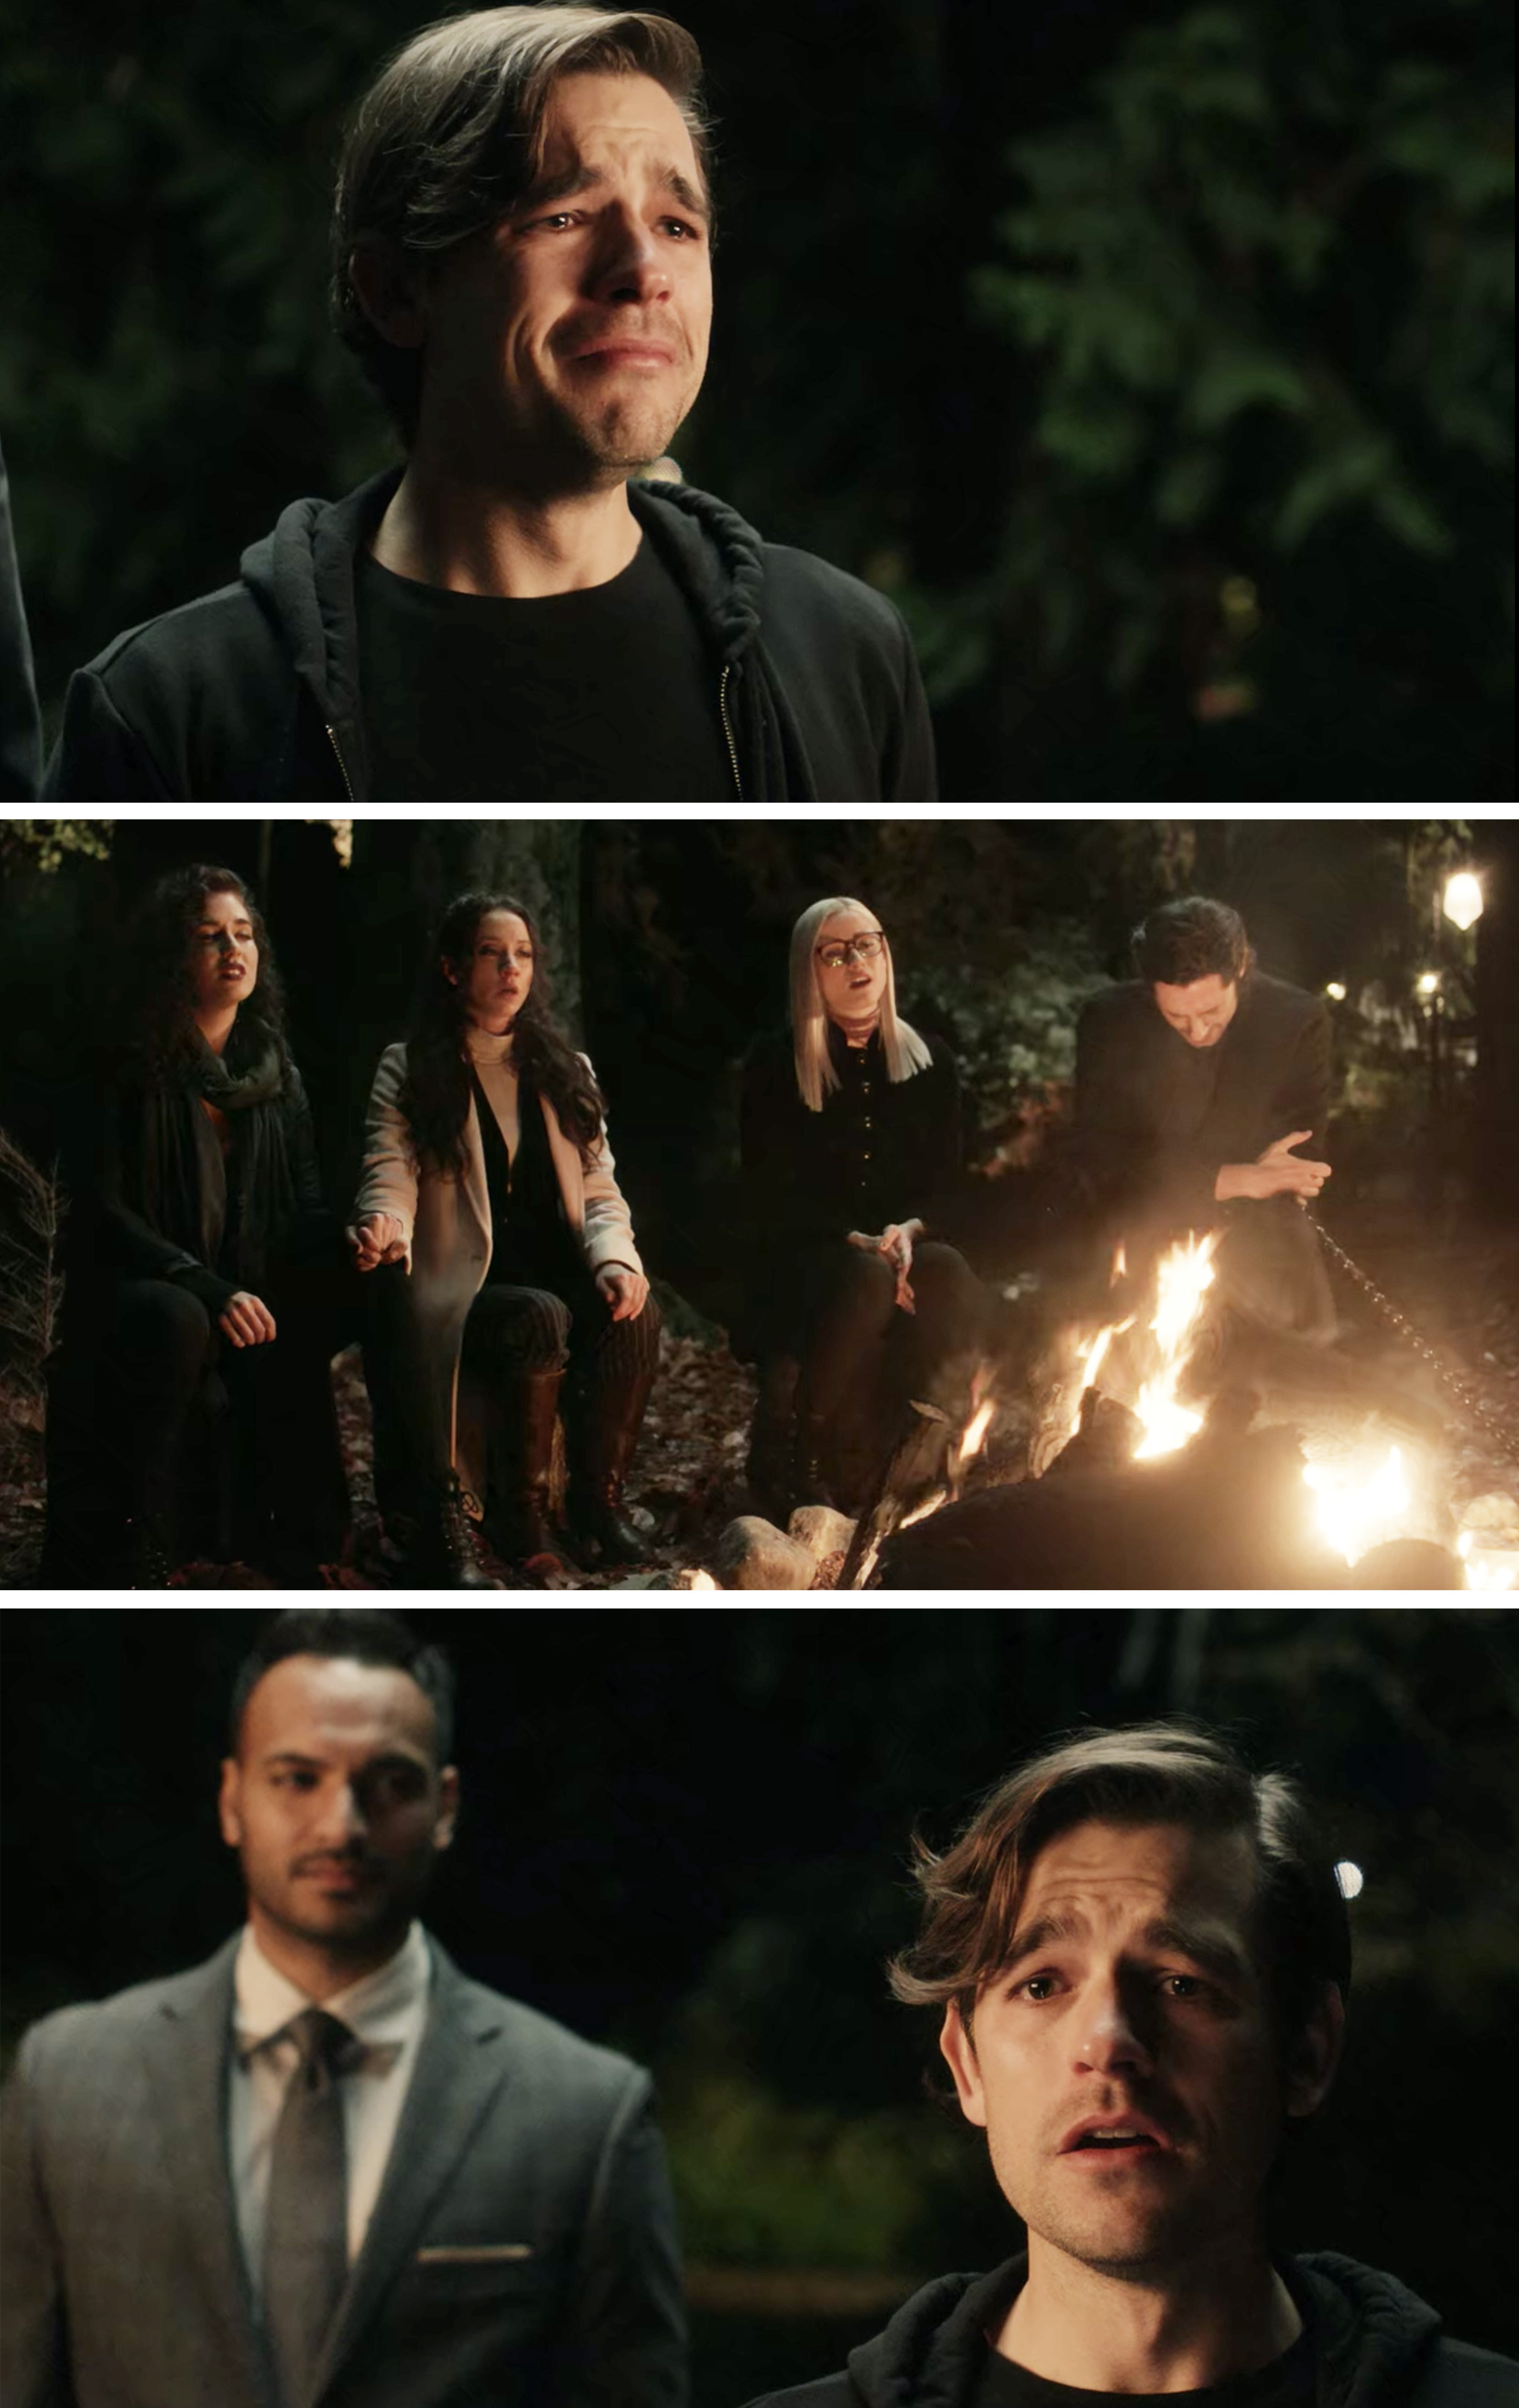 Everyone singing around a campfire and Quentin crying